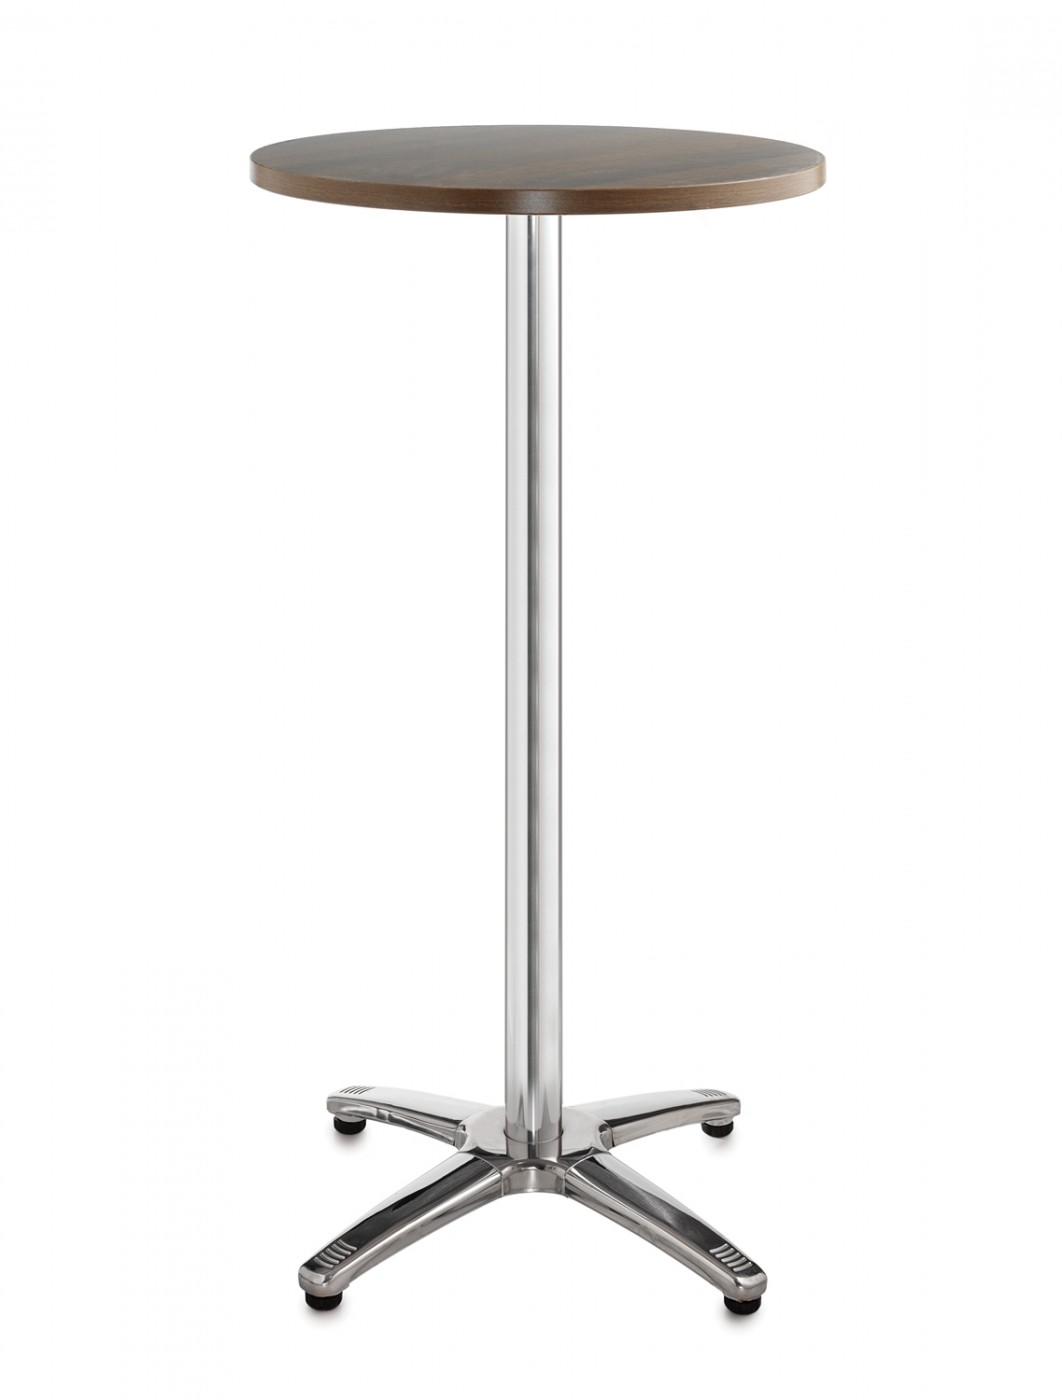 Bistro table tall r6pt 121 office furniture